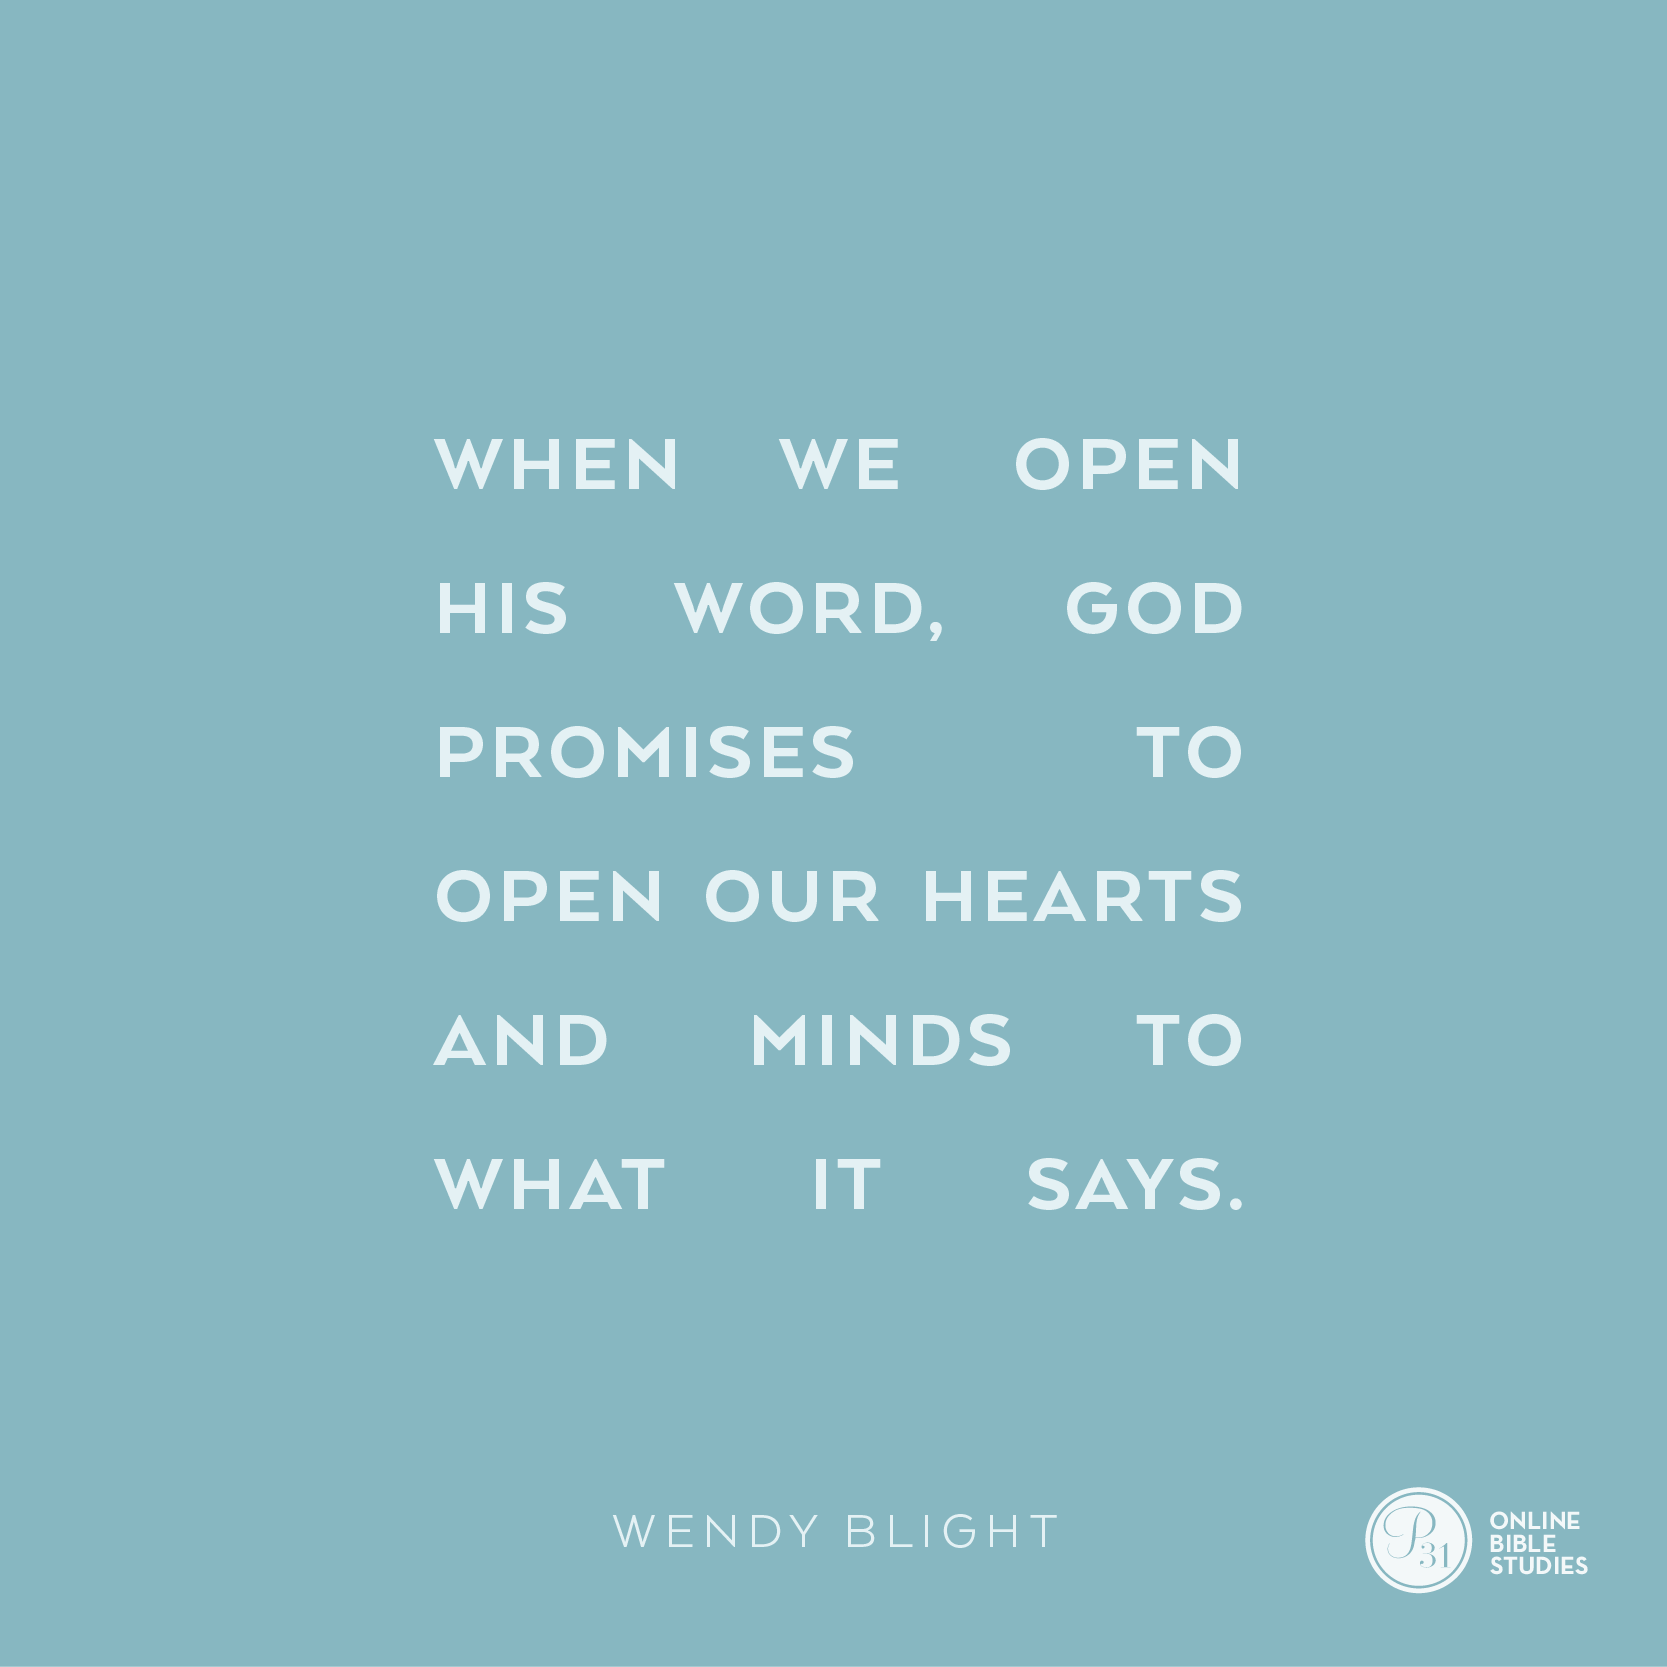 """""""When we open His Word, God promises to open our hearts and minds to what it says."""" - Wendy Blight  #HiddenJoyBook   Proverbs 31 Online Bible Studies Week 1 #P31OBS"""